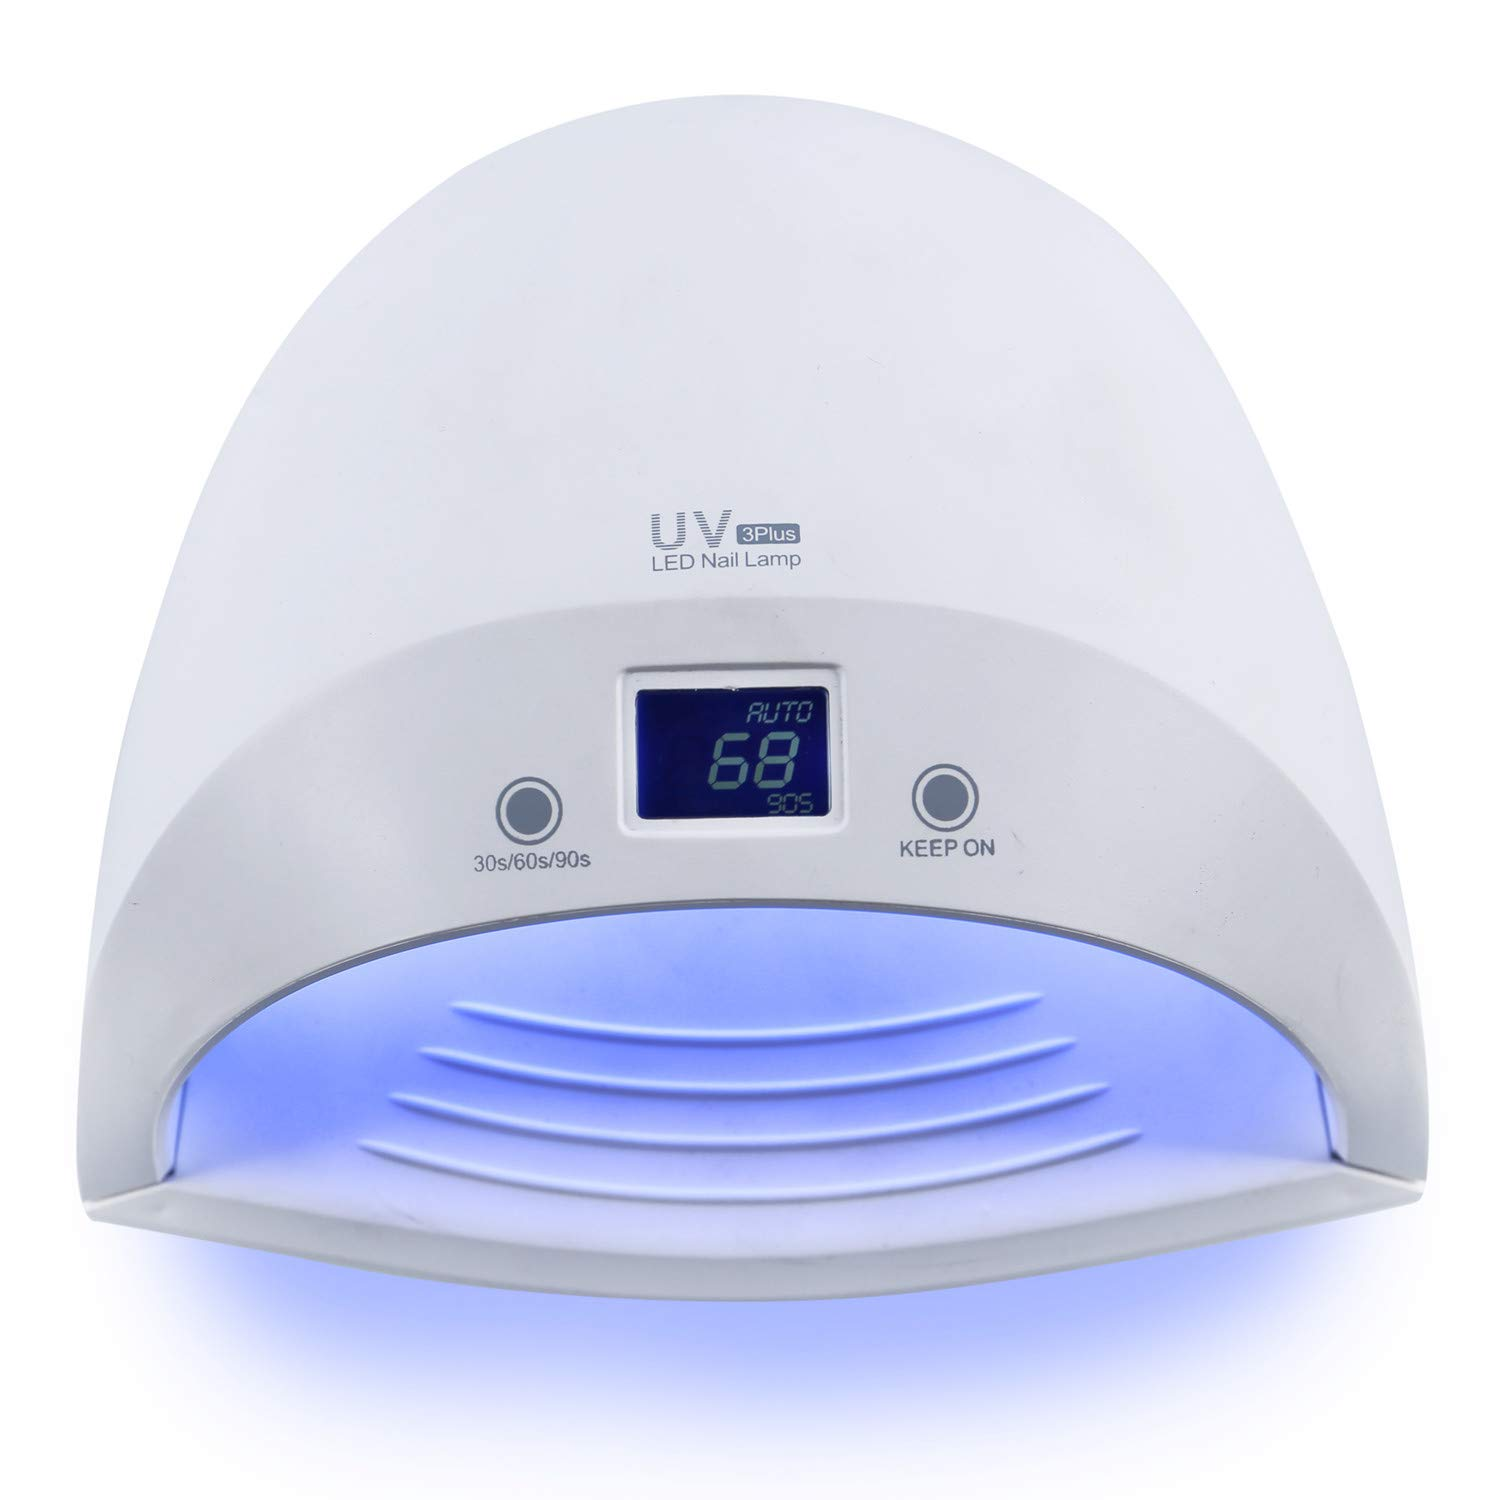 Amazon.com: Lio Battery-60W UV LED Nail Dryer 27pcs Dual Light Curing Lamp for Gel Nails Polish with 30s/60s/90s Timer Auto Sensor Dry & Rechargeable Nail ...